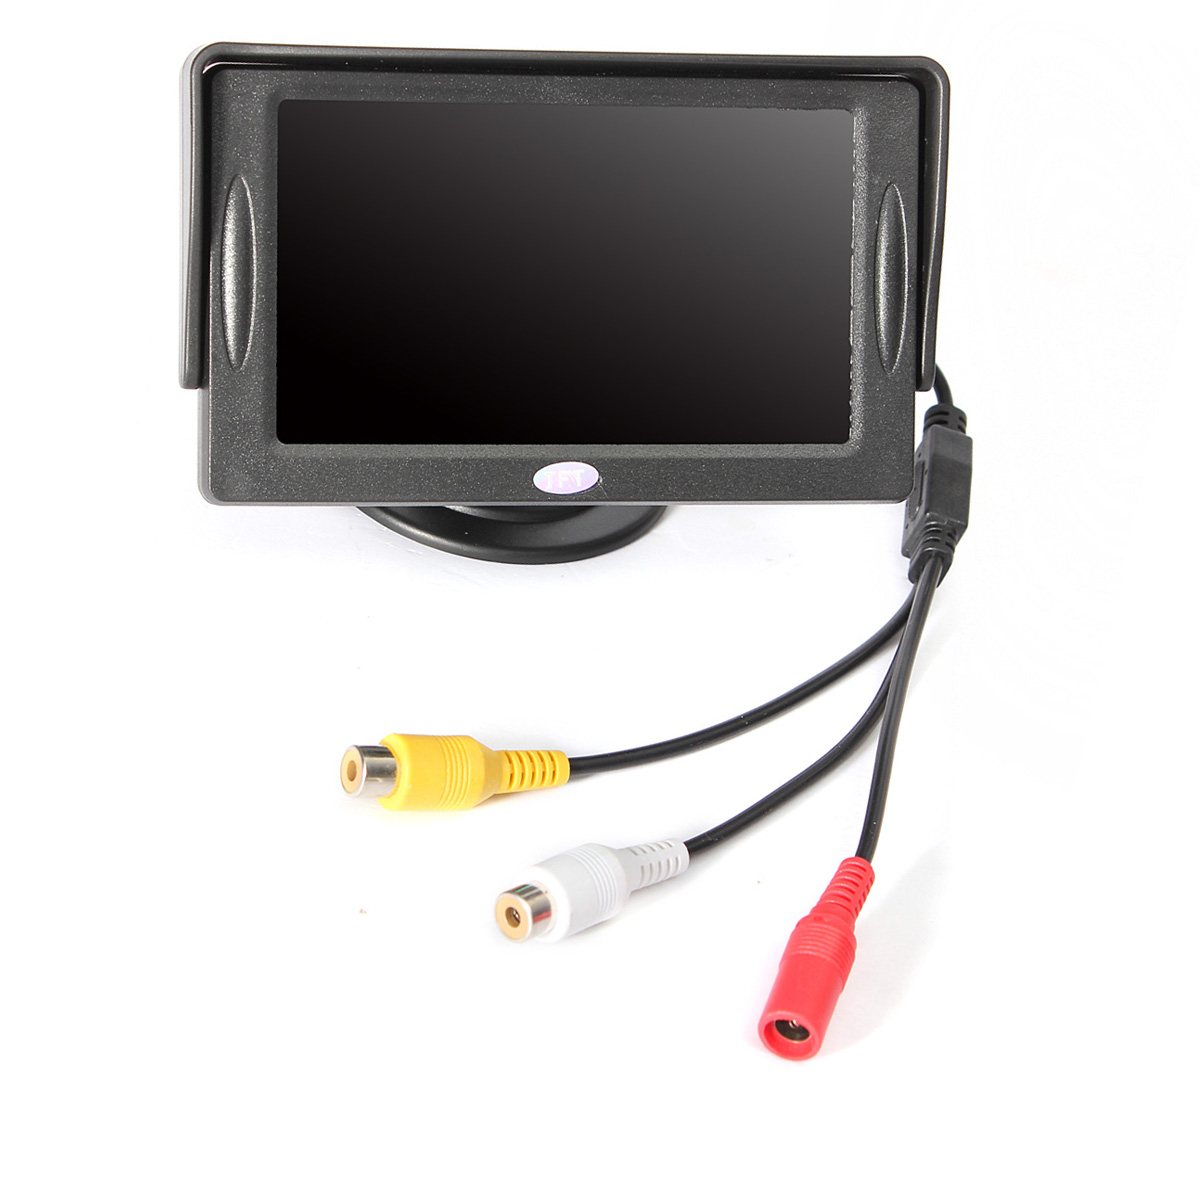 NEW 4.3 Inch HD Digital Monitor TFT LCD Color Screen For Reversing Camera 12V Home Security Safety